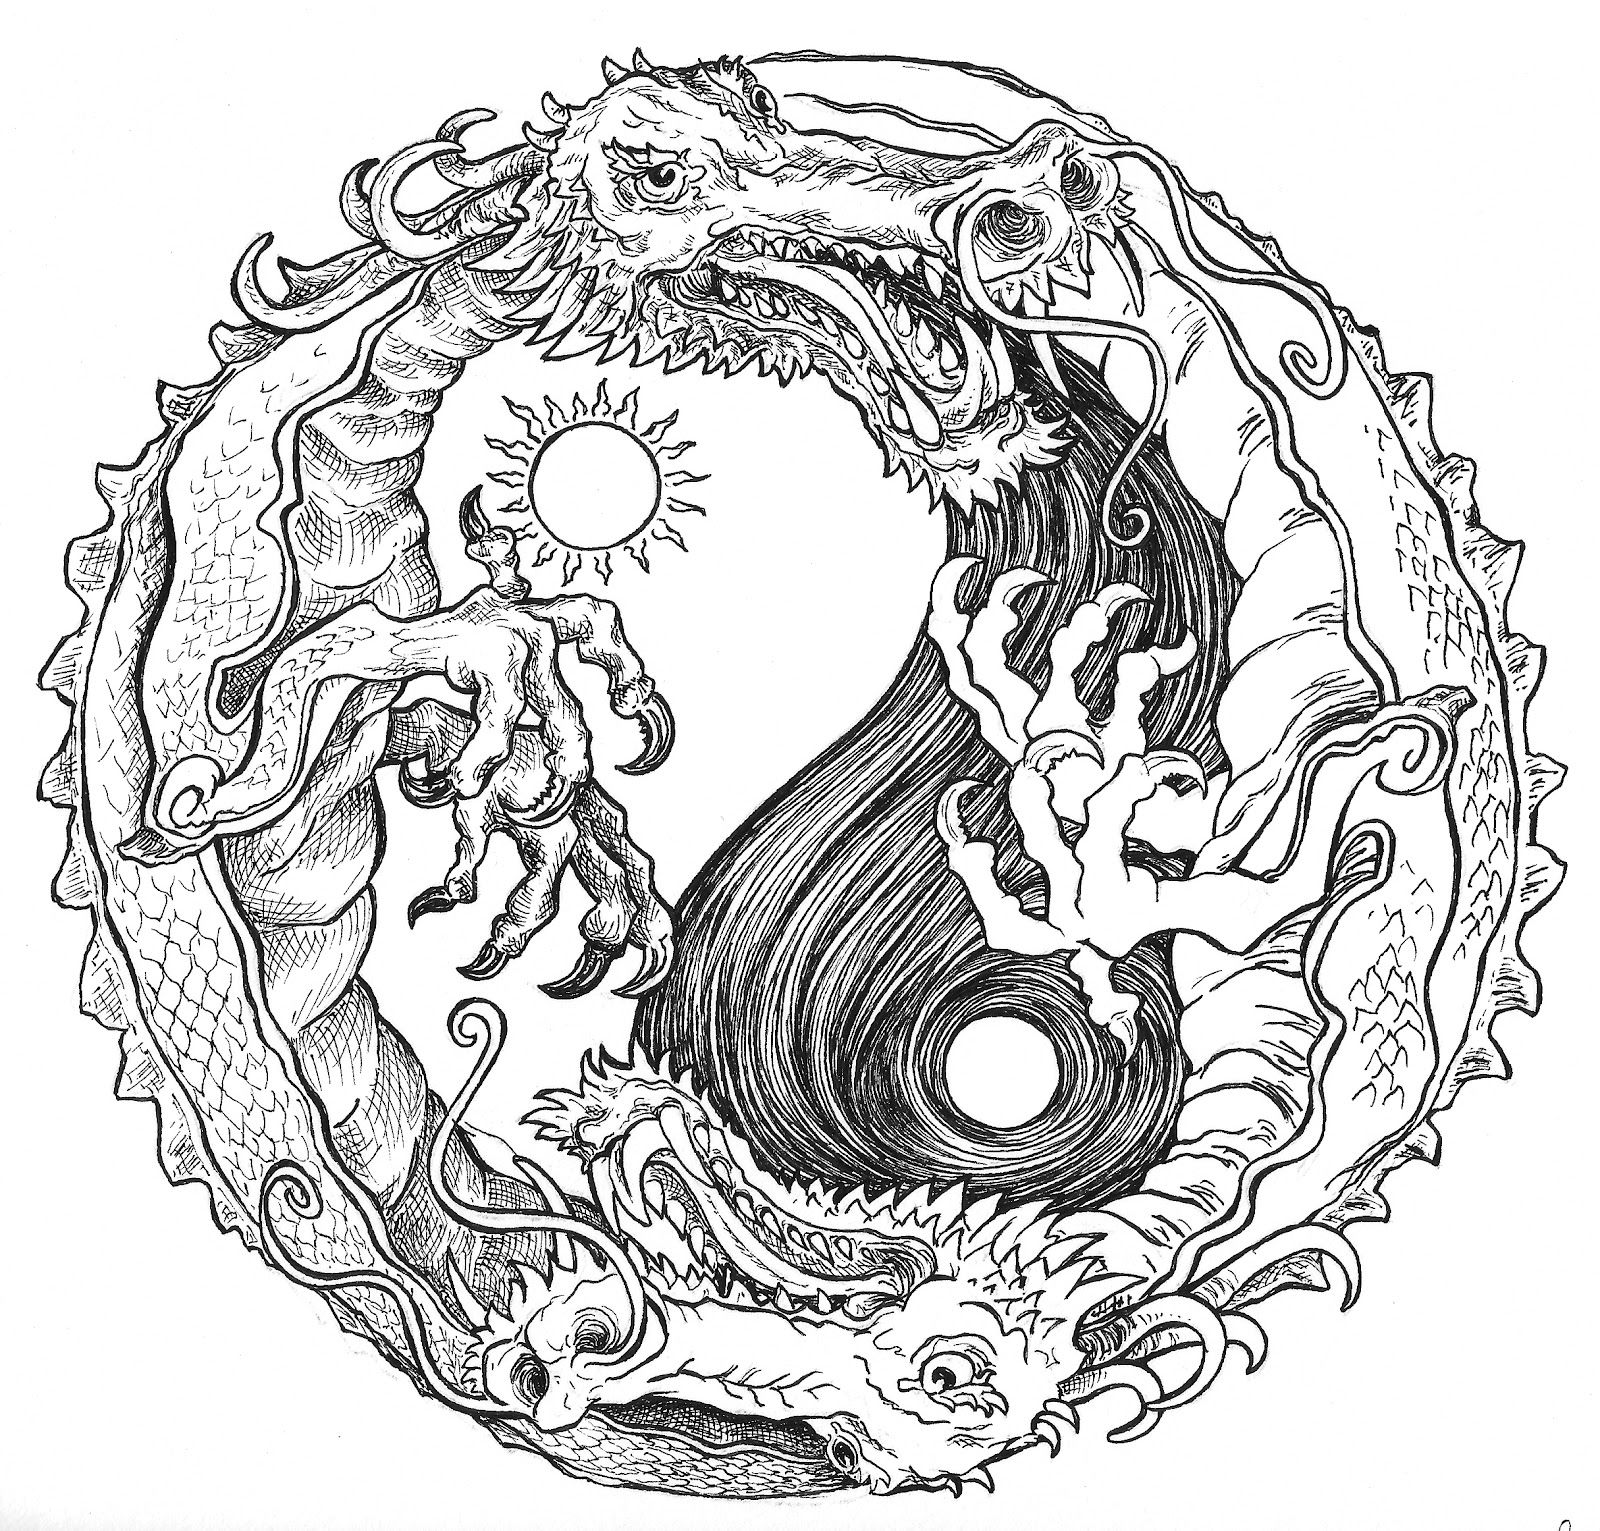 Printable coloring pages of dragons - Sun And Moon Dragon Yin Yang Coloring Pages Colouring Adult Detailed Advanced Printable Kleuren Voor Volwassenen